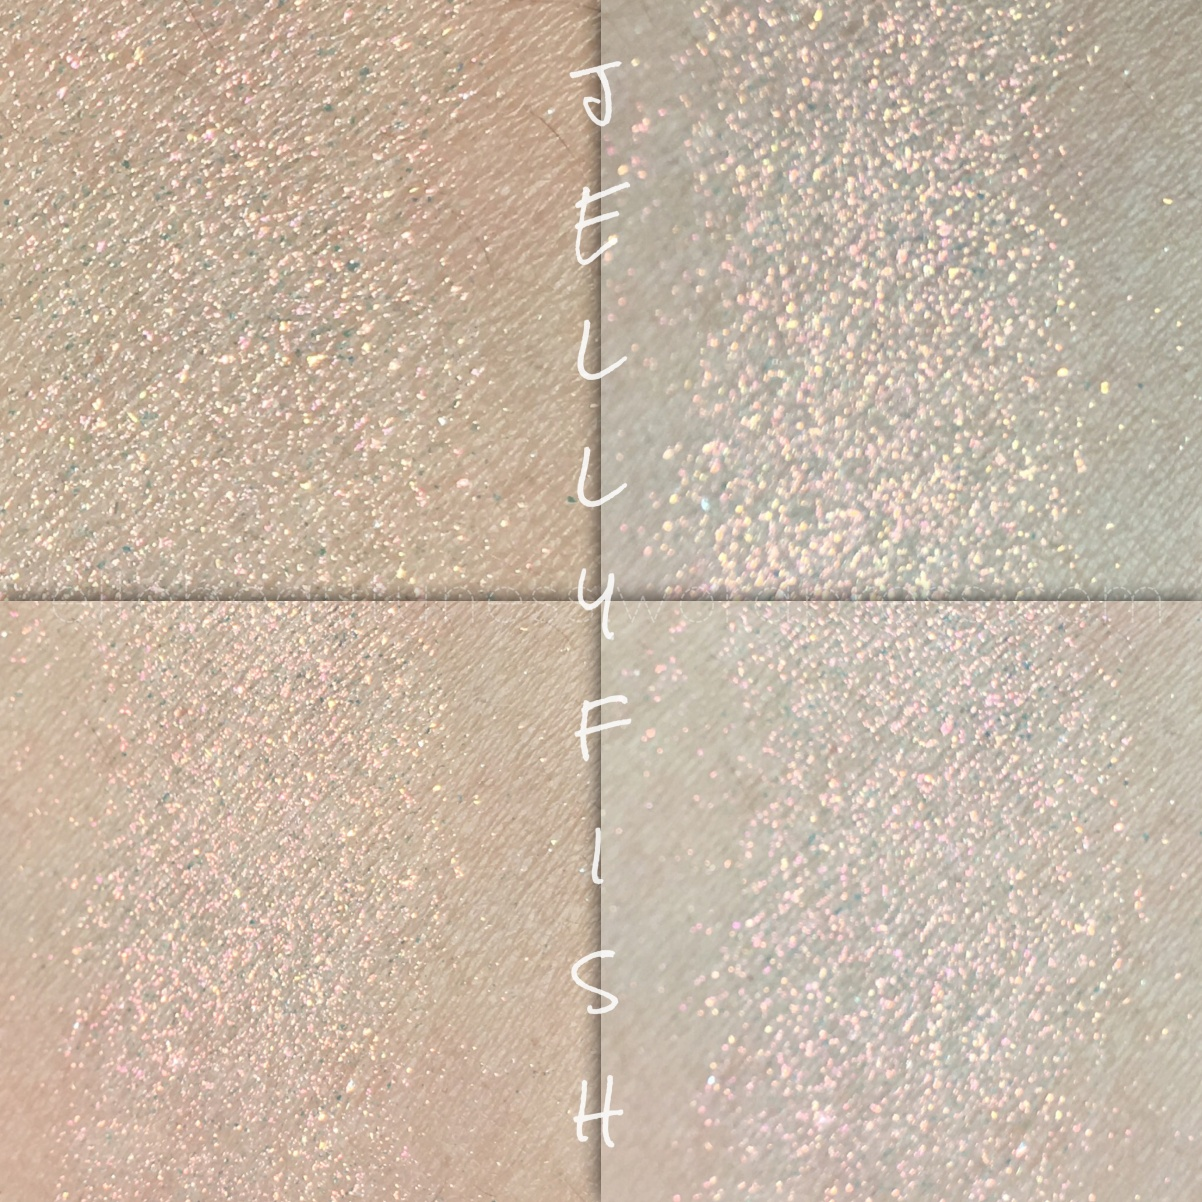 MINERAL eyeshadow ombretti minerali neve cosmetics days promo swatch review sisters pearl jellyfish.JPG